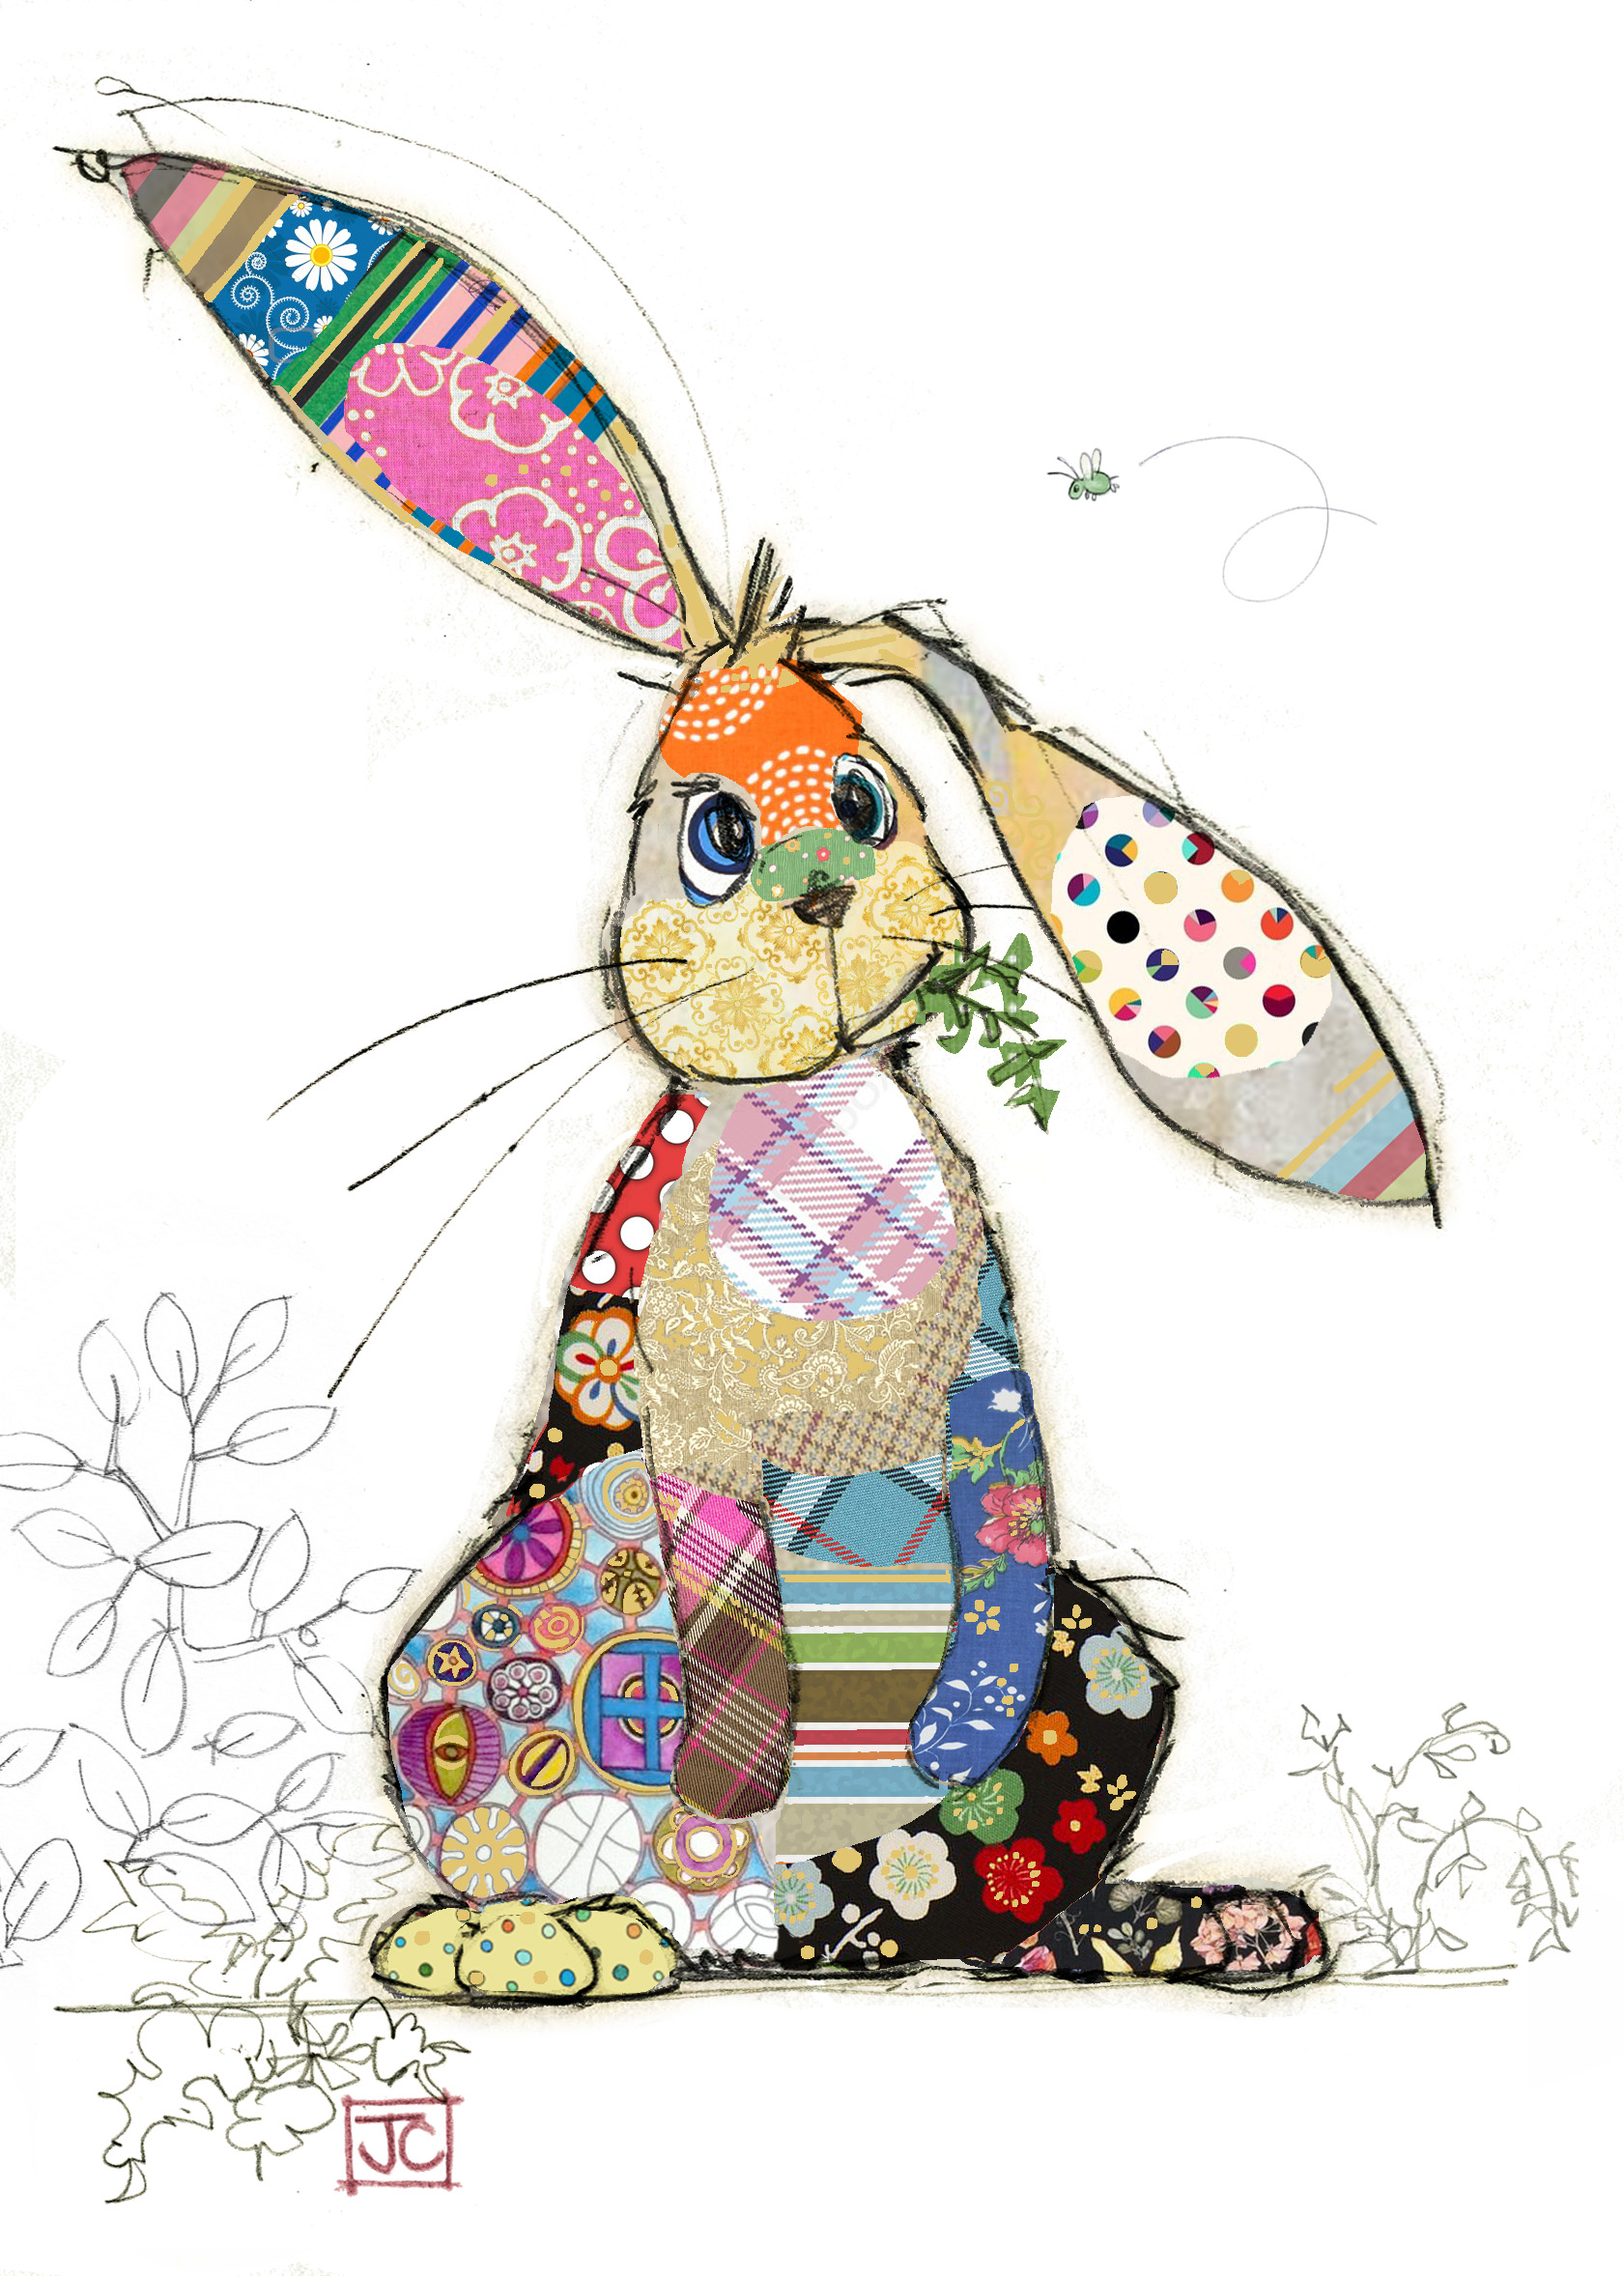 Look out for more bunny-inspired designs from Bug Art in the coming months, to join Binky Bunny, who hopped into the portfolio this year.